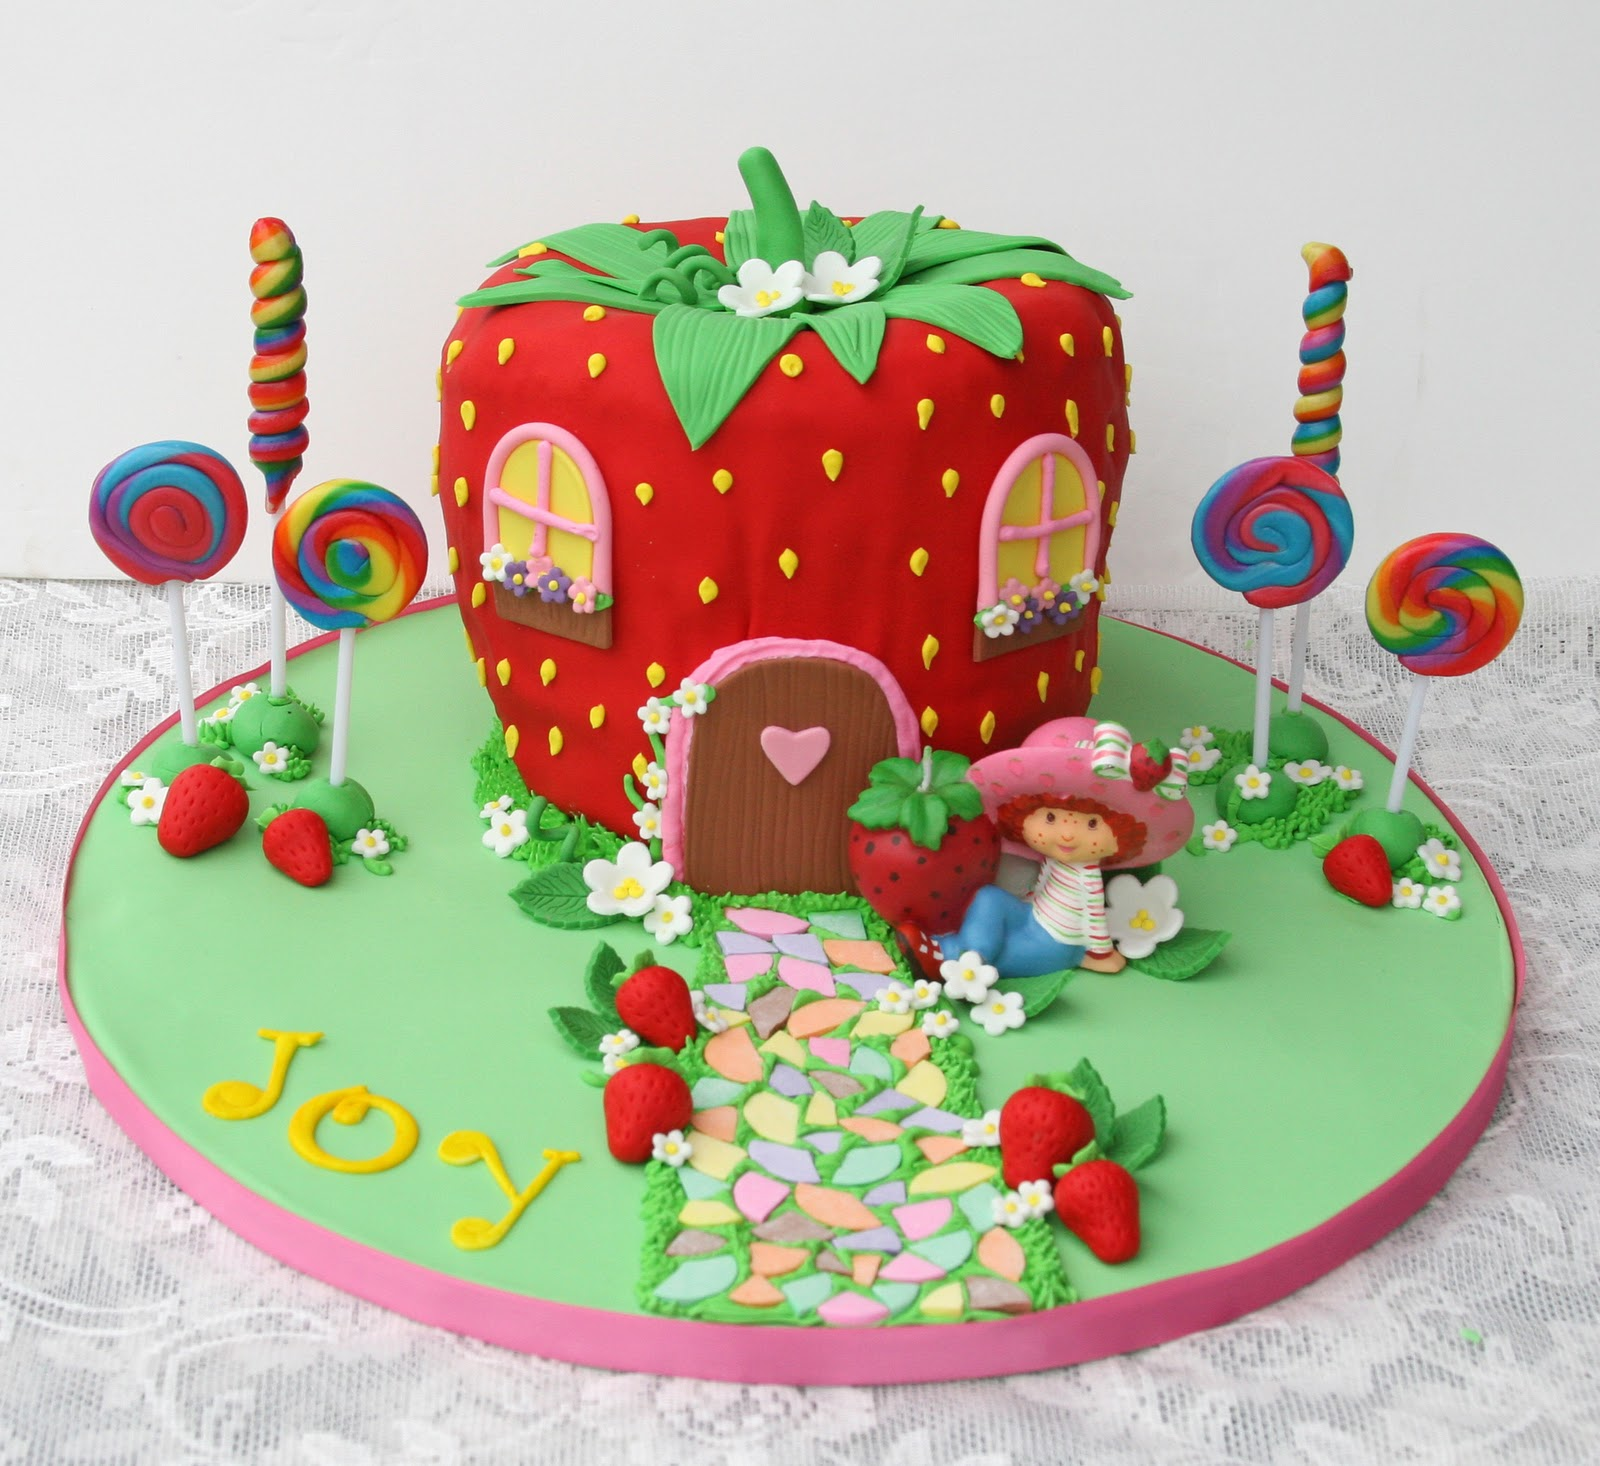 Astounding Strawberry Shortcake Cartoon Birthday Cake Funny Birthday Cards Online Elaedamsfinfo